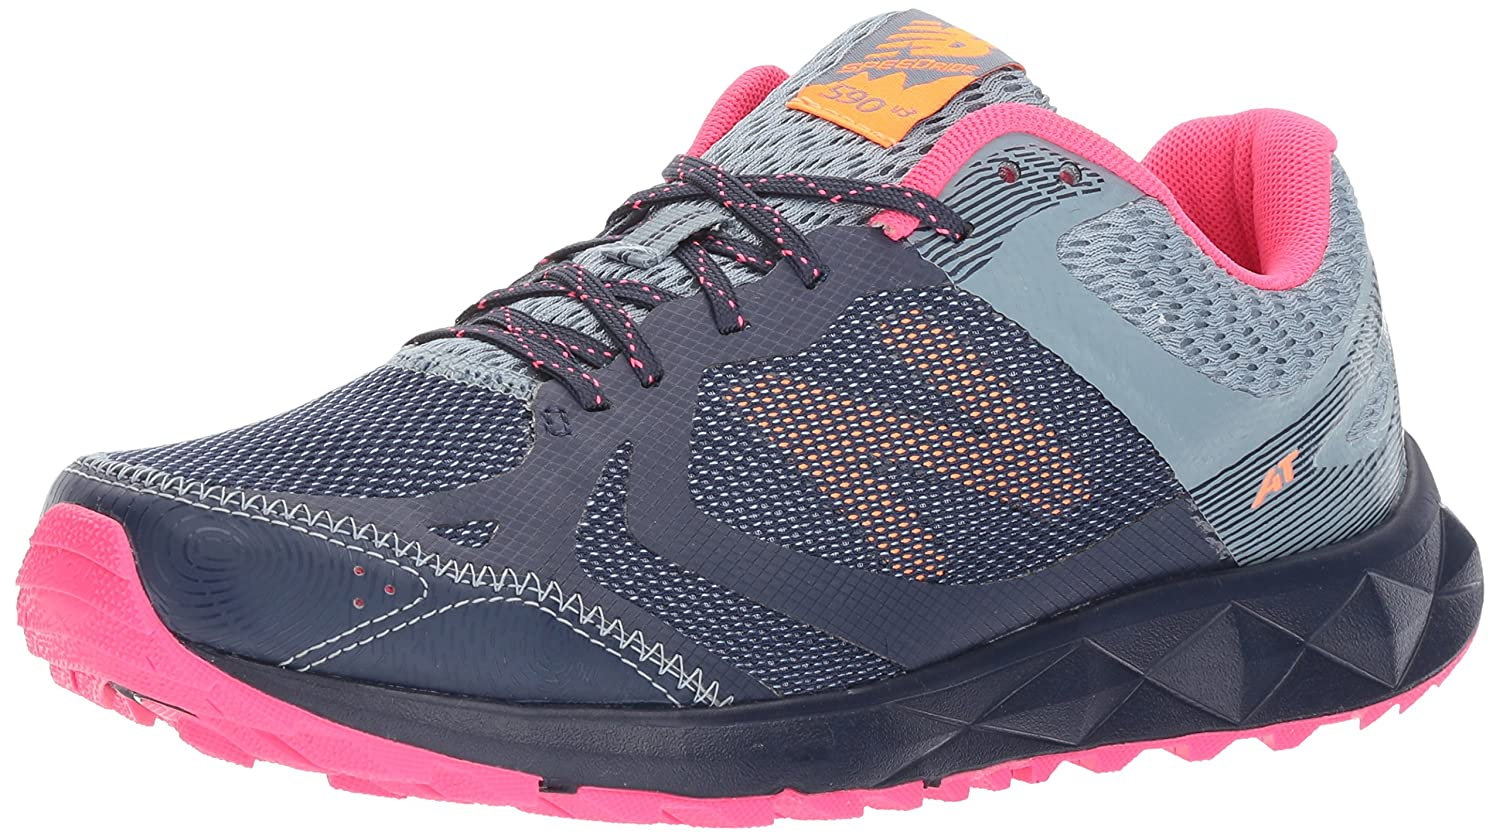 New Balance Women's 590v3 Running Shoe B01N0GK9HF 6 B(M) US|Cyclone/Cyclone